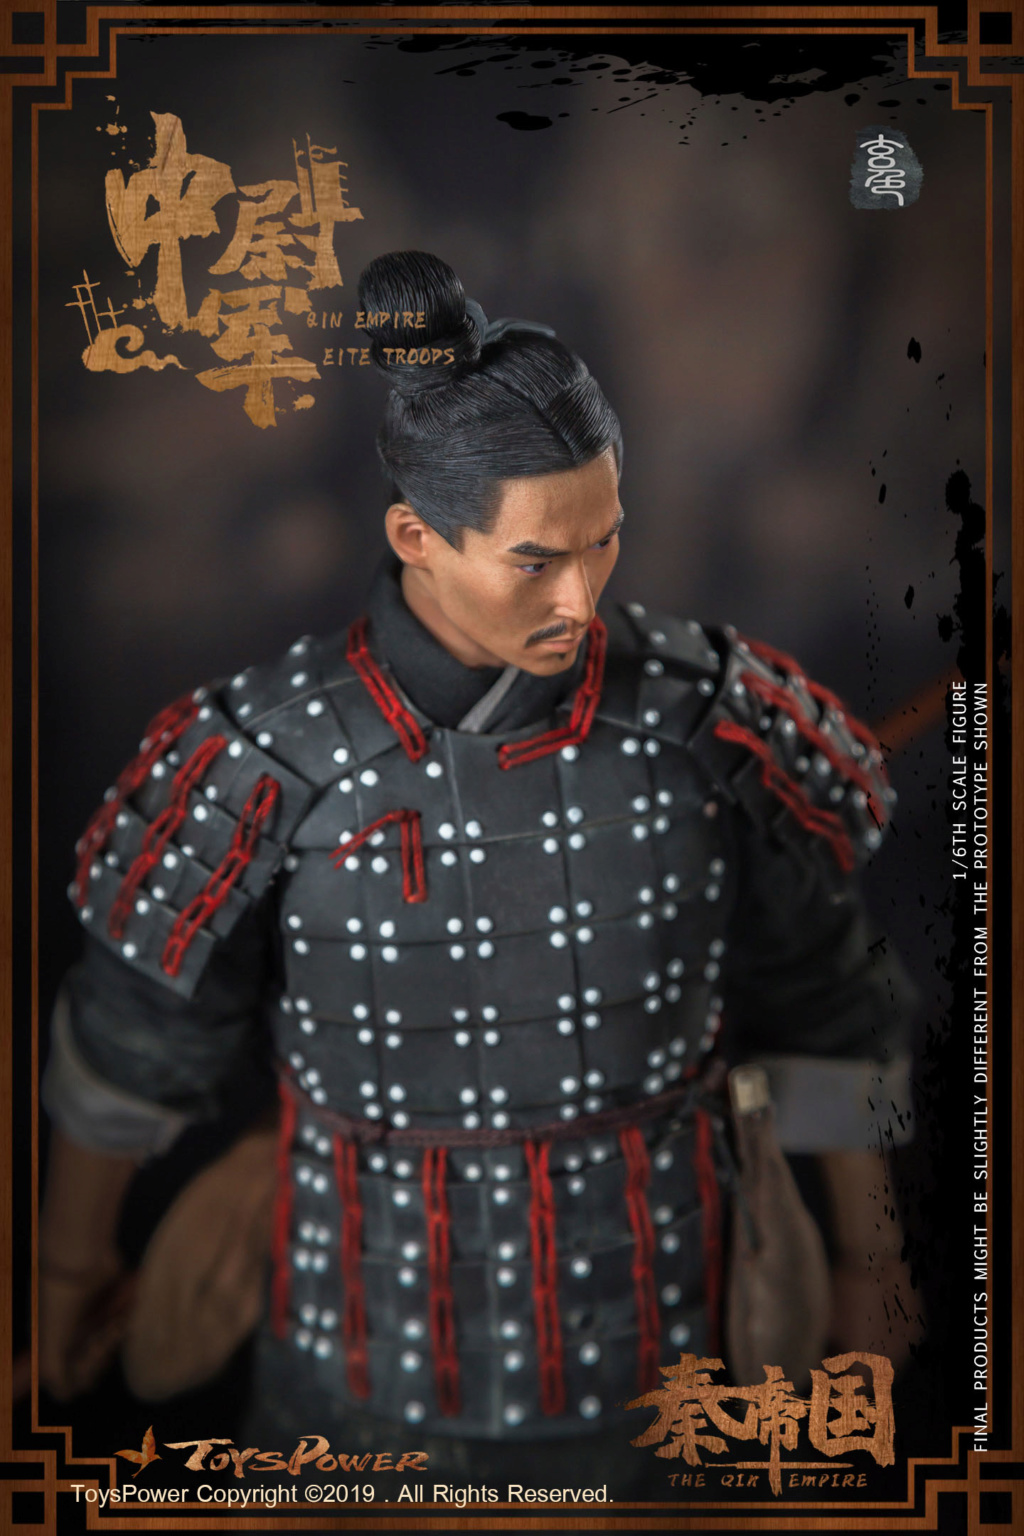 Army - NEW PRODUCT: Toyspower: 1/6 Qin Empire Lieutenant Army (Terracotta Warriors) movable doll CT012# (update armor piece drawing) 17412210